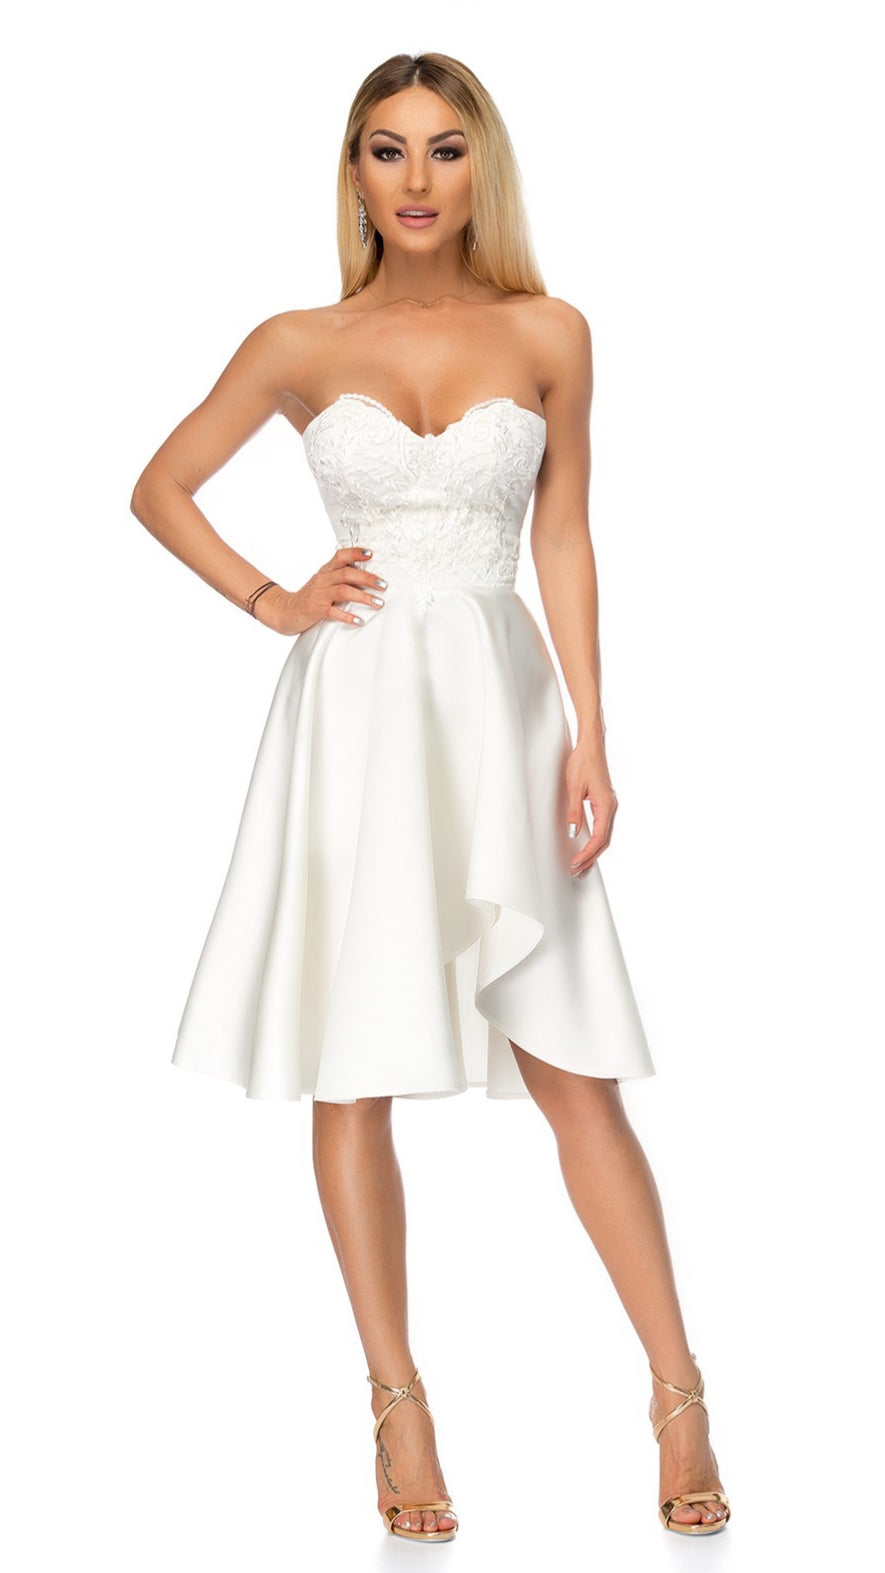 99f6da0718942 Load image into Gallery viewer, White strapless skater dress ...